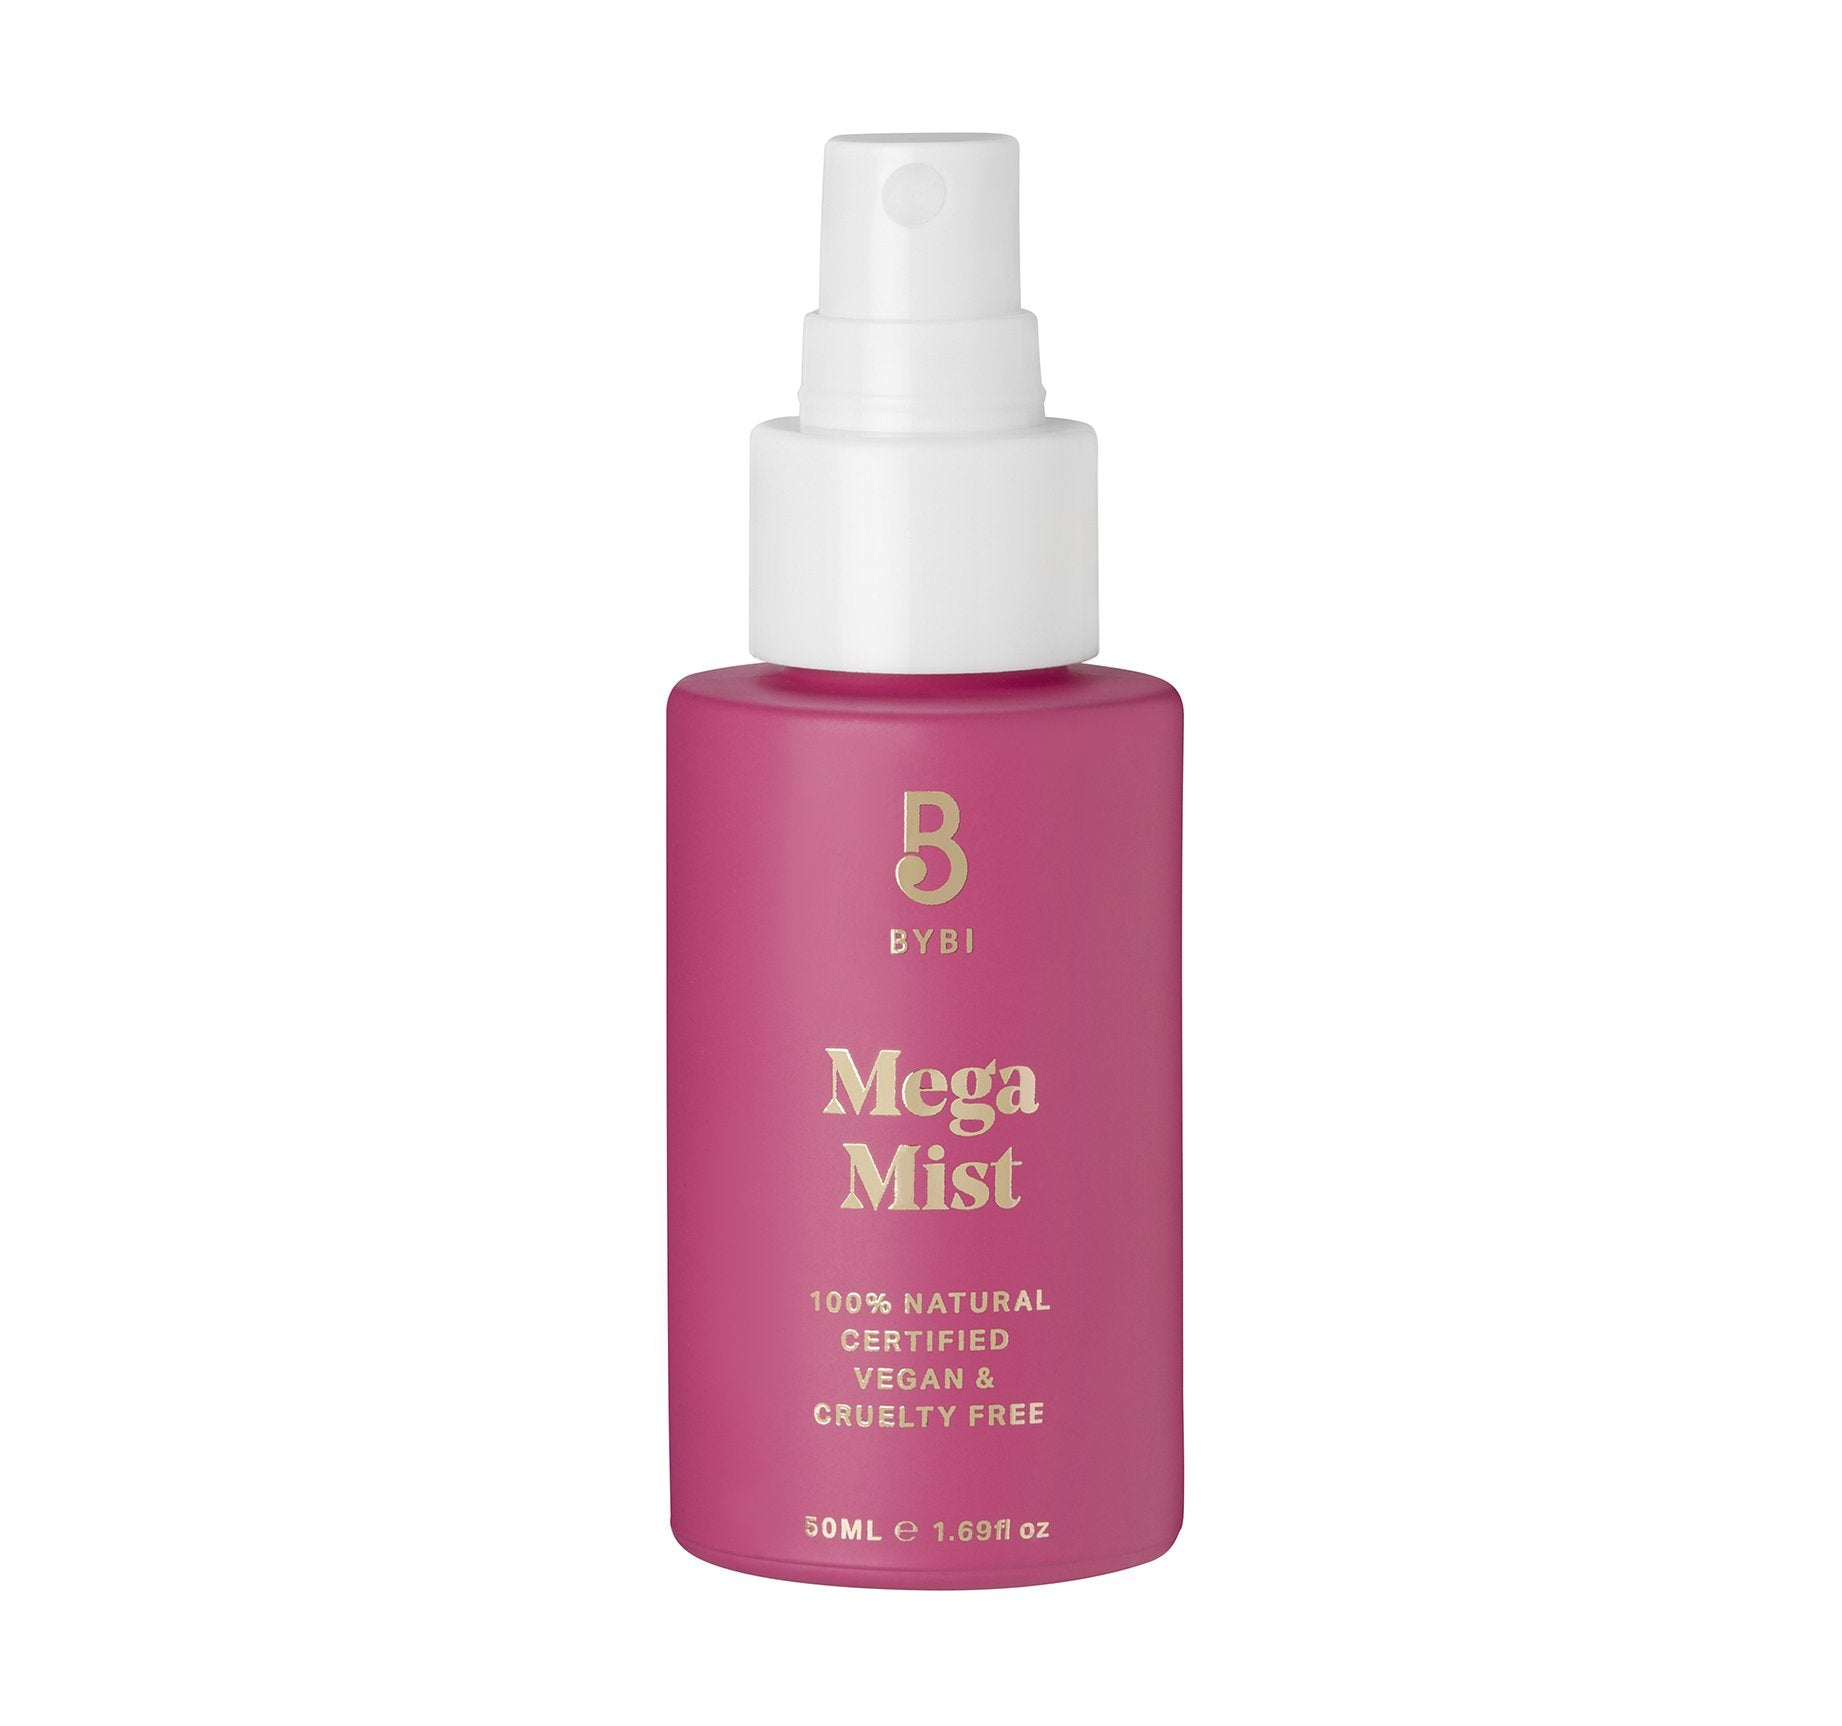 MEGA MIST HYALURONIC ACID FACIAL SPRAY, view larger image